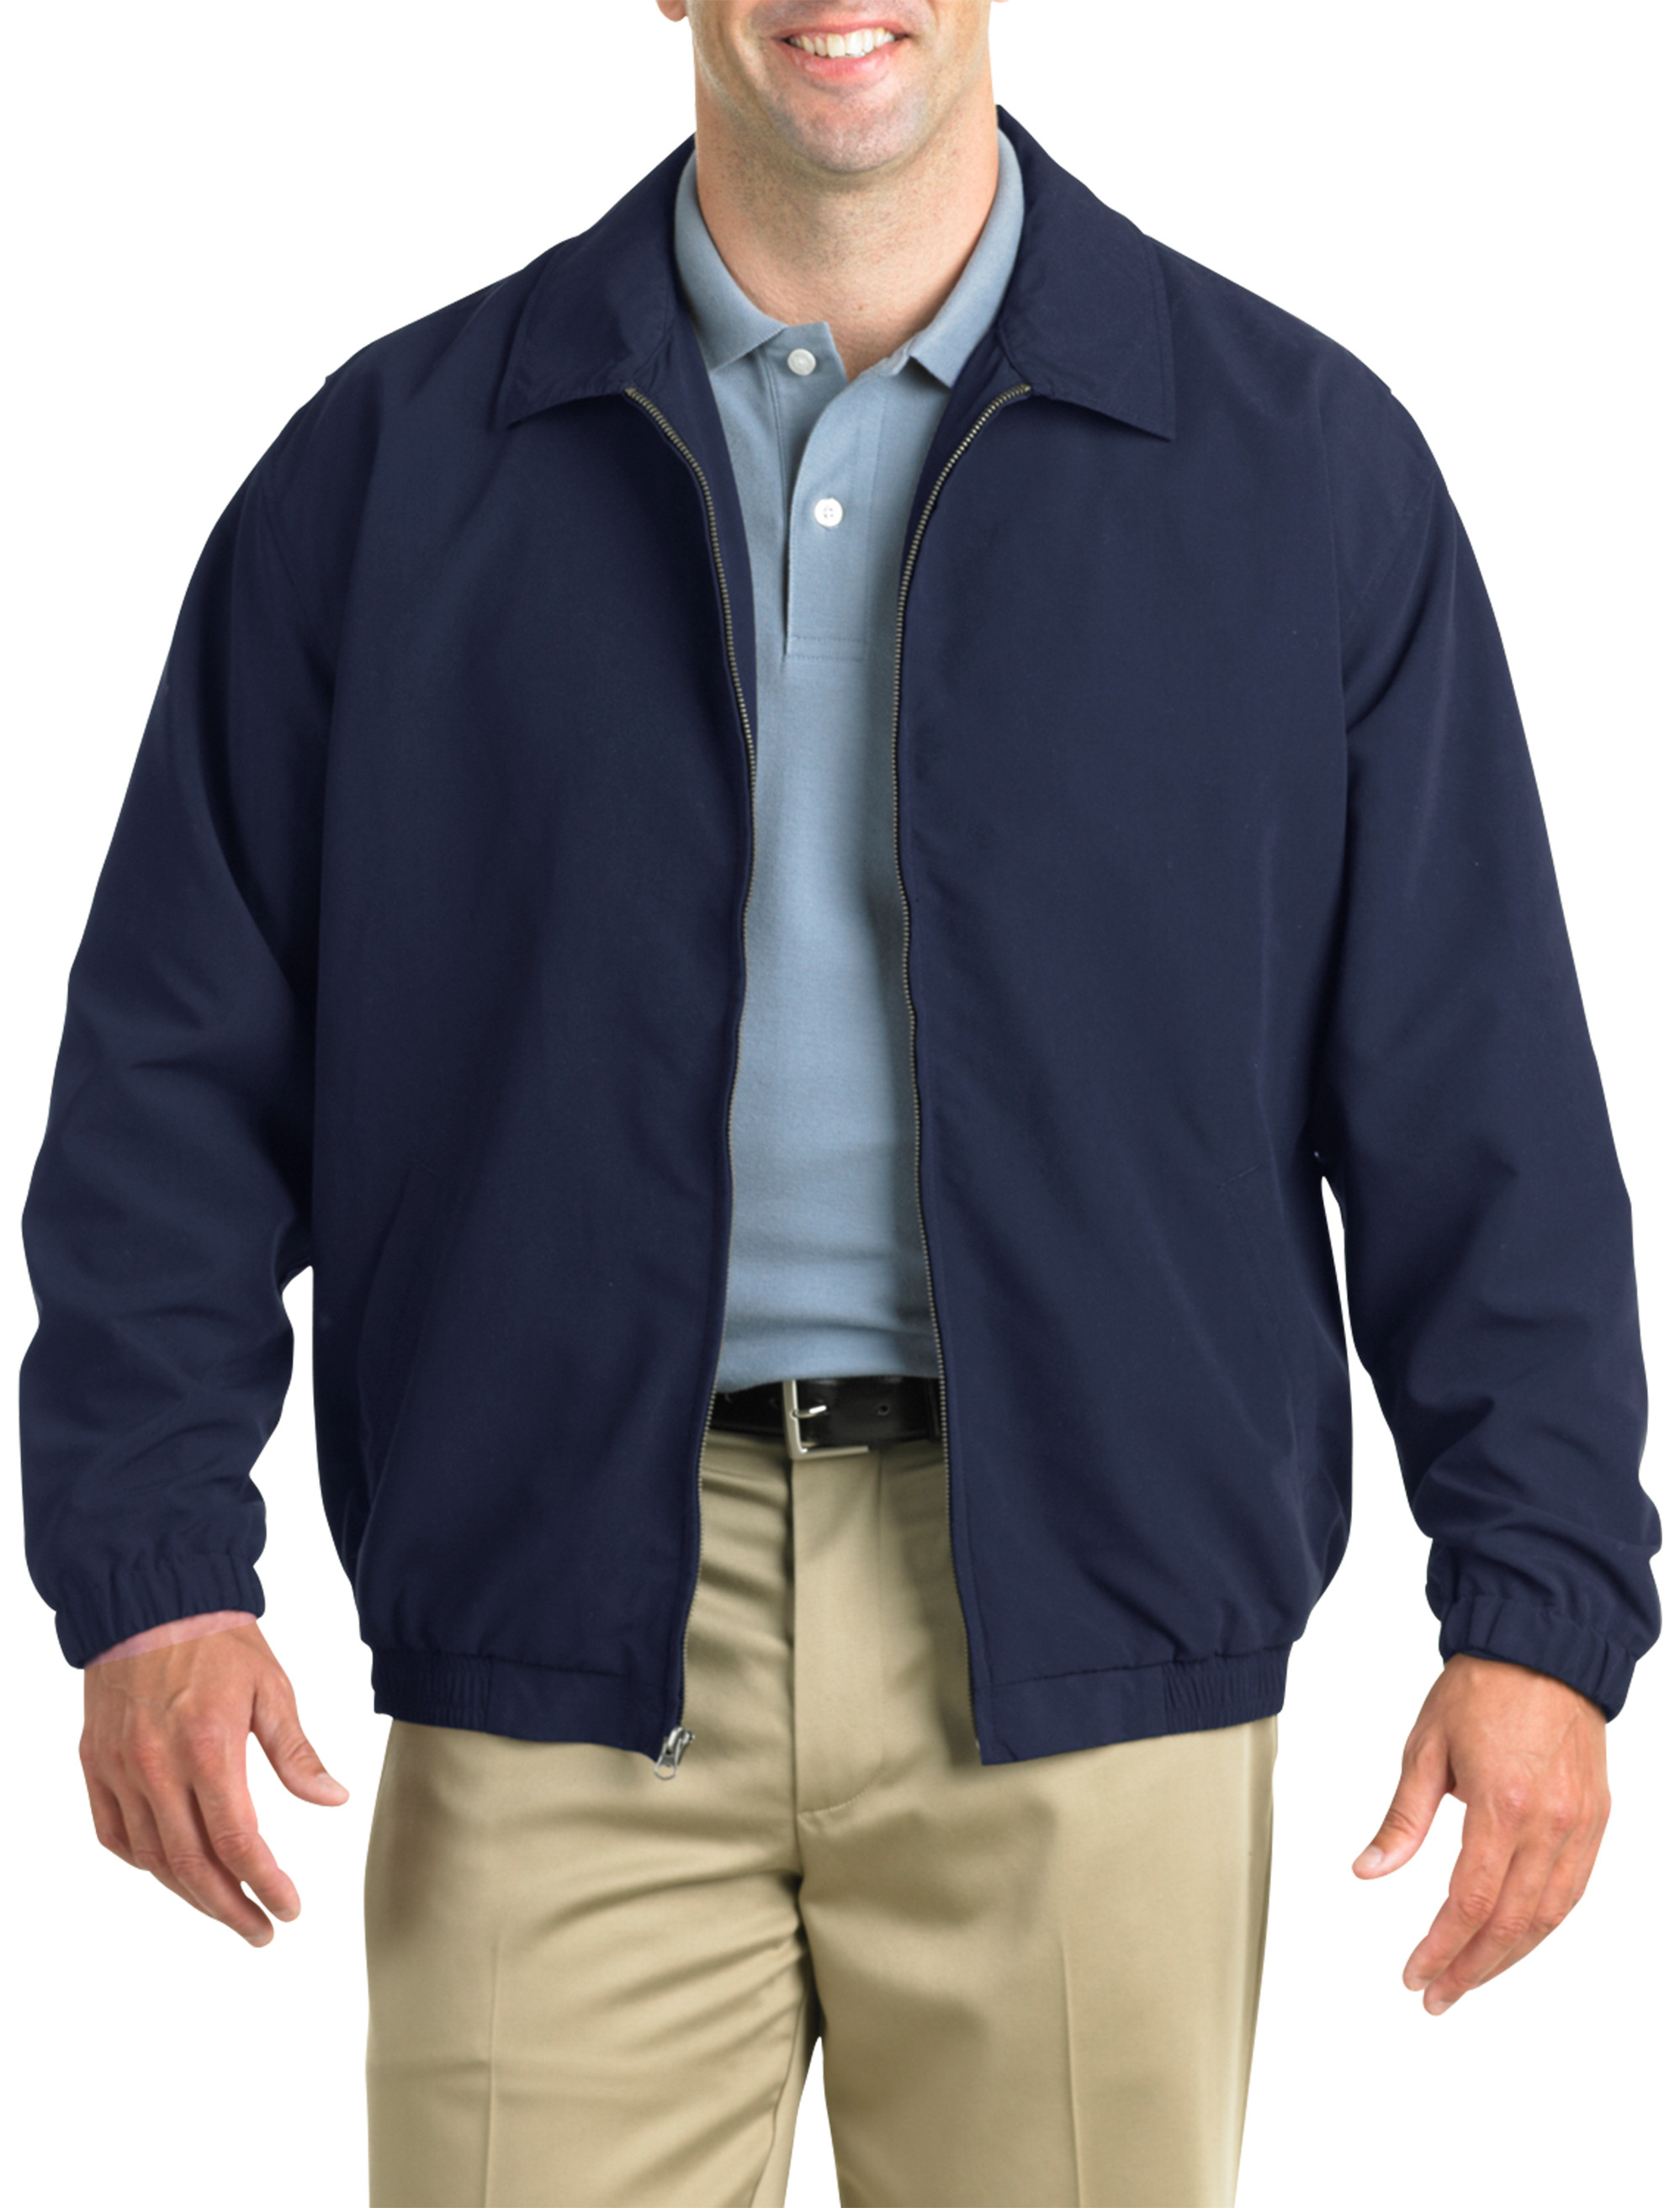 big bay men Shop for men's big & tall suits, sportcoats & clothing online at josbankcom browse the latest big & tall styles for men from jos a bank free shipping on orders over $50.